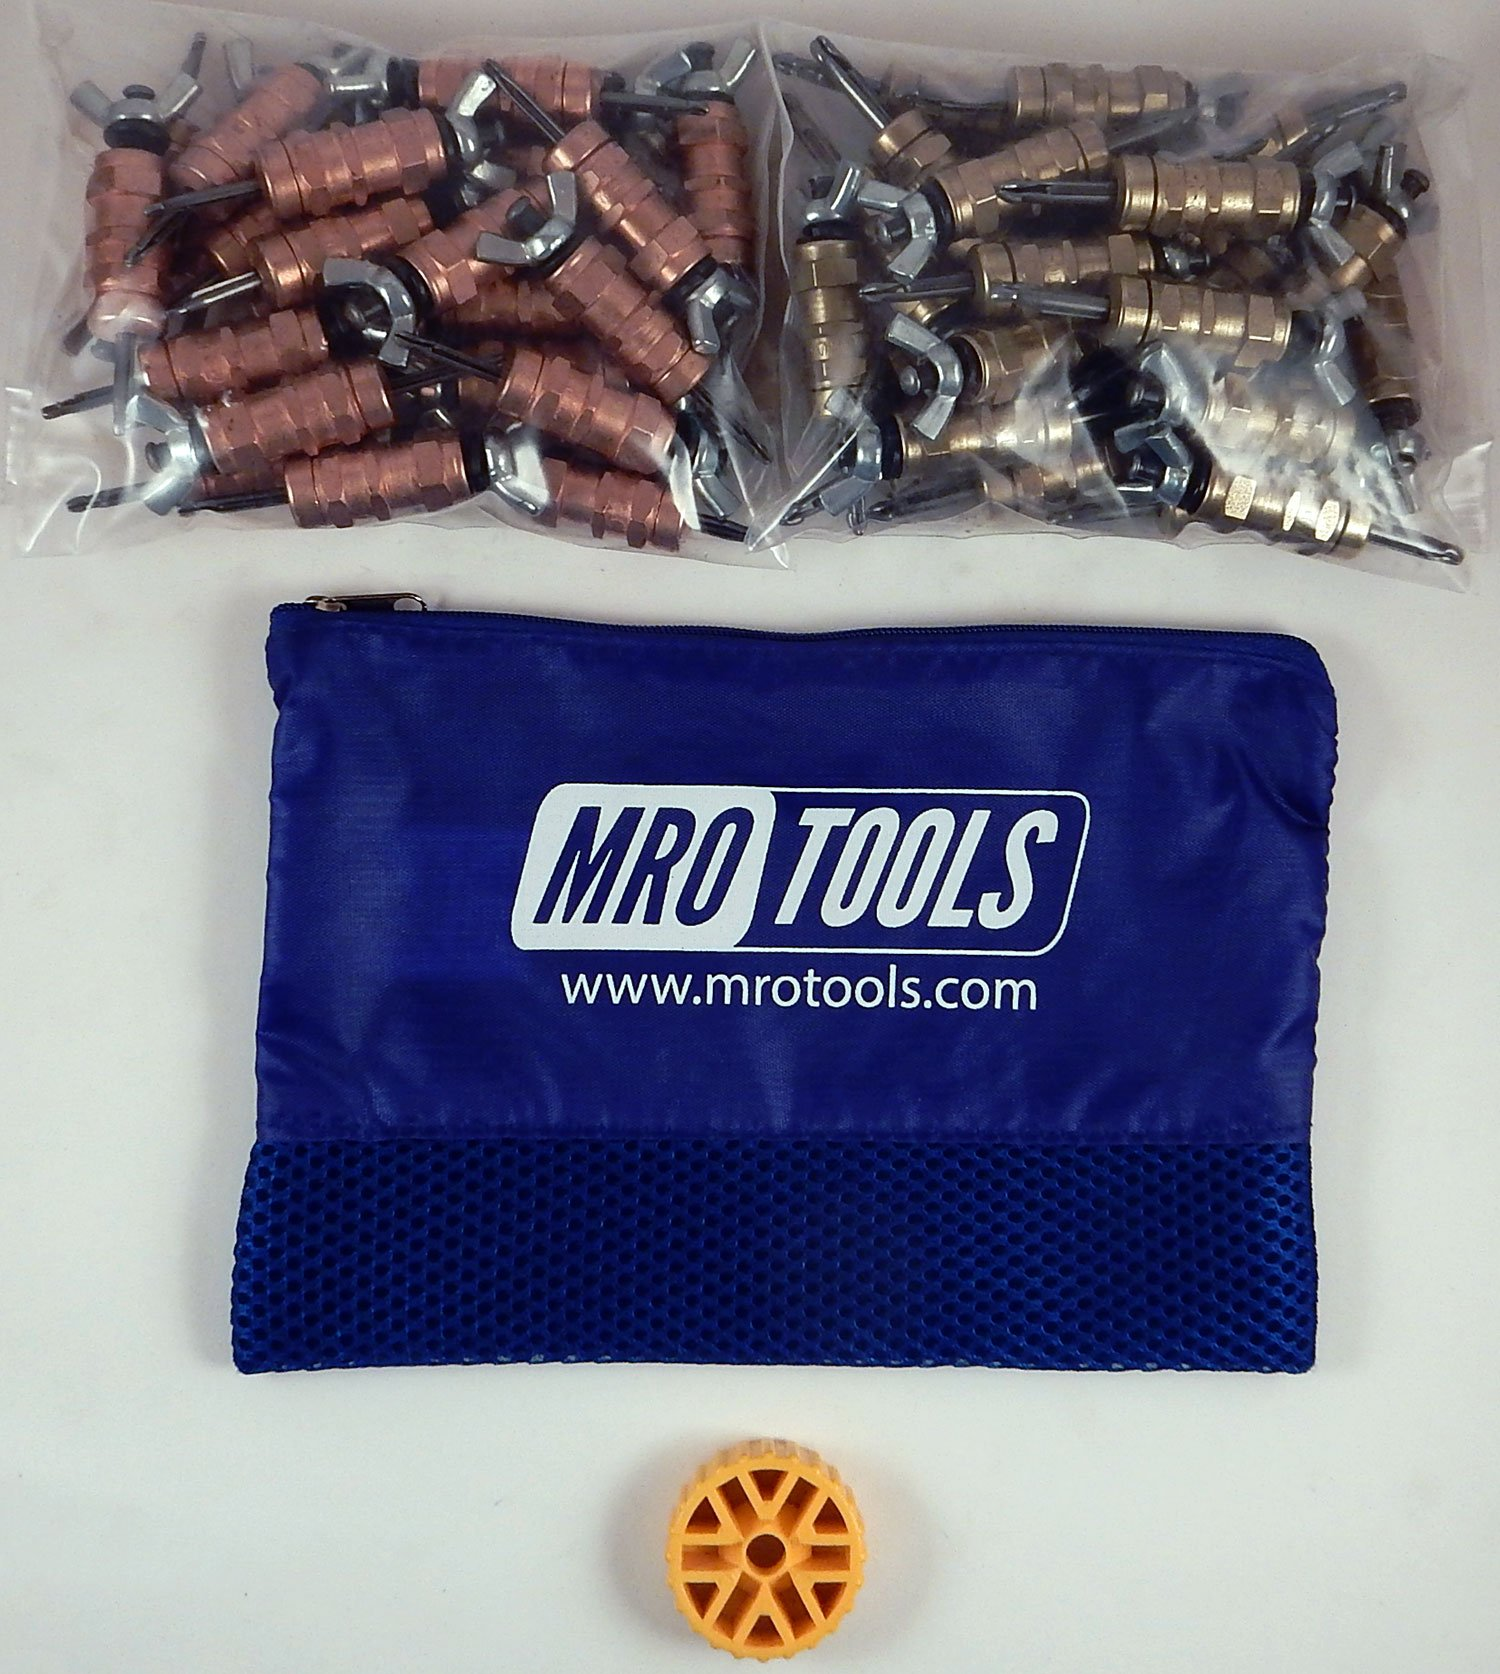 25 1/8 & 25 3/16 Standard Wing-Nut Cleco Fasteners w HBHT Tool & Bag (KWN4S50-1) by MRO Tools Cleco Fasteners